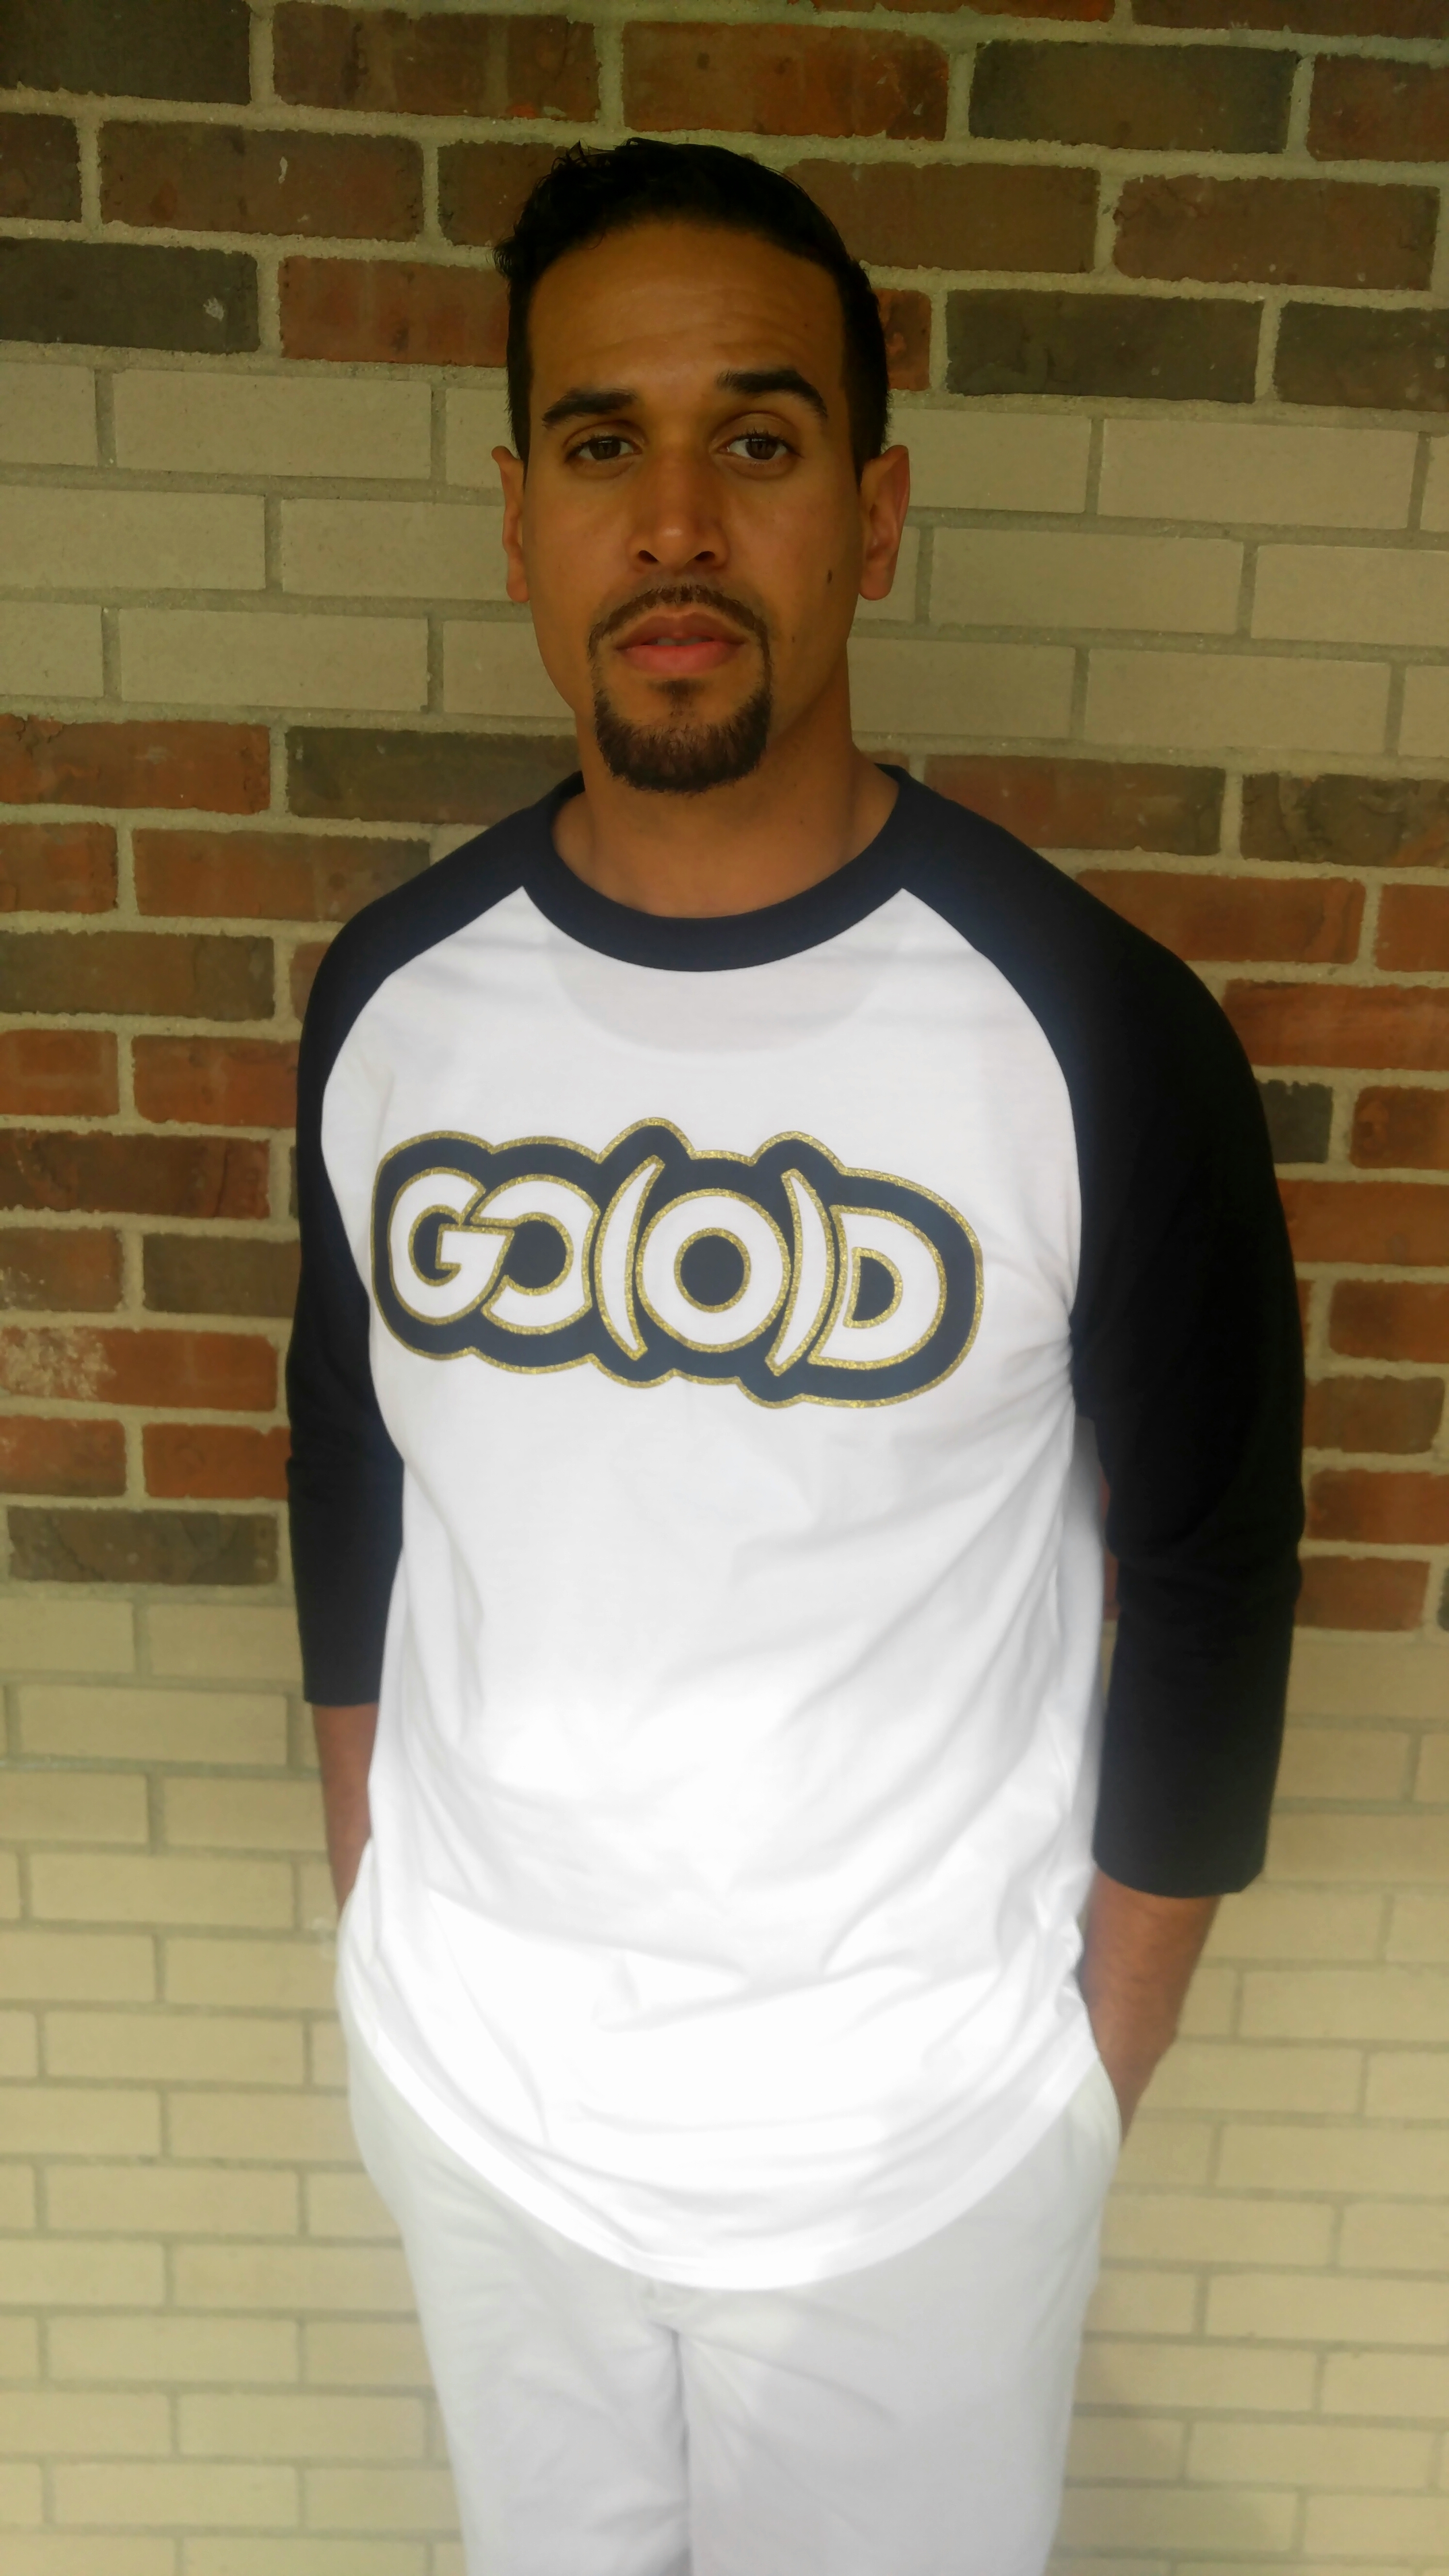 GO(O)D baseball tee-black/white/gold glitter trim 00088